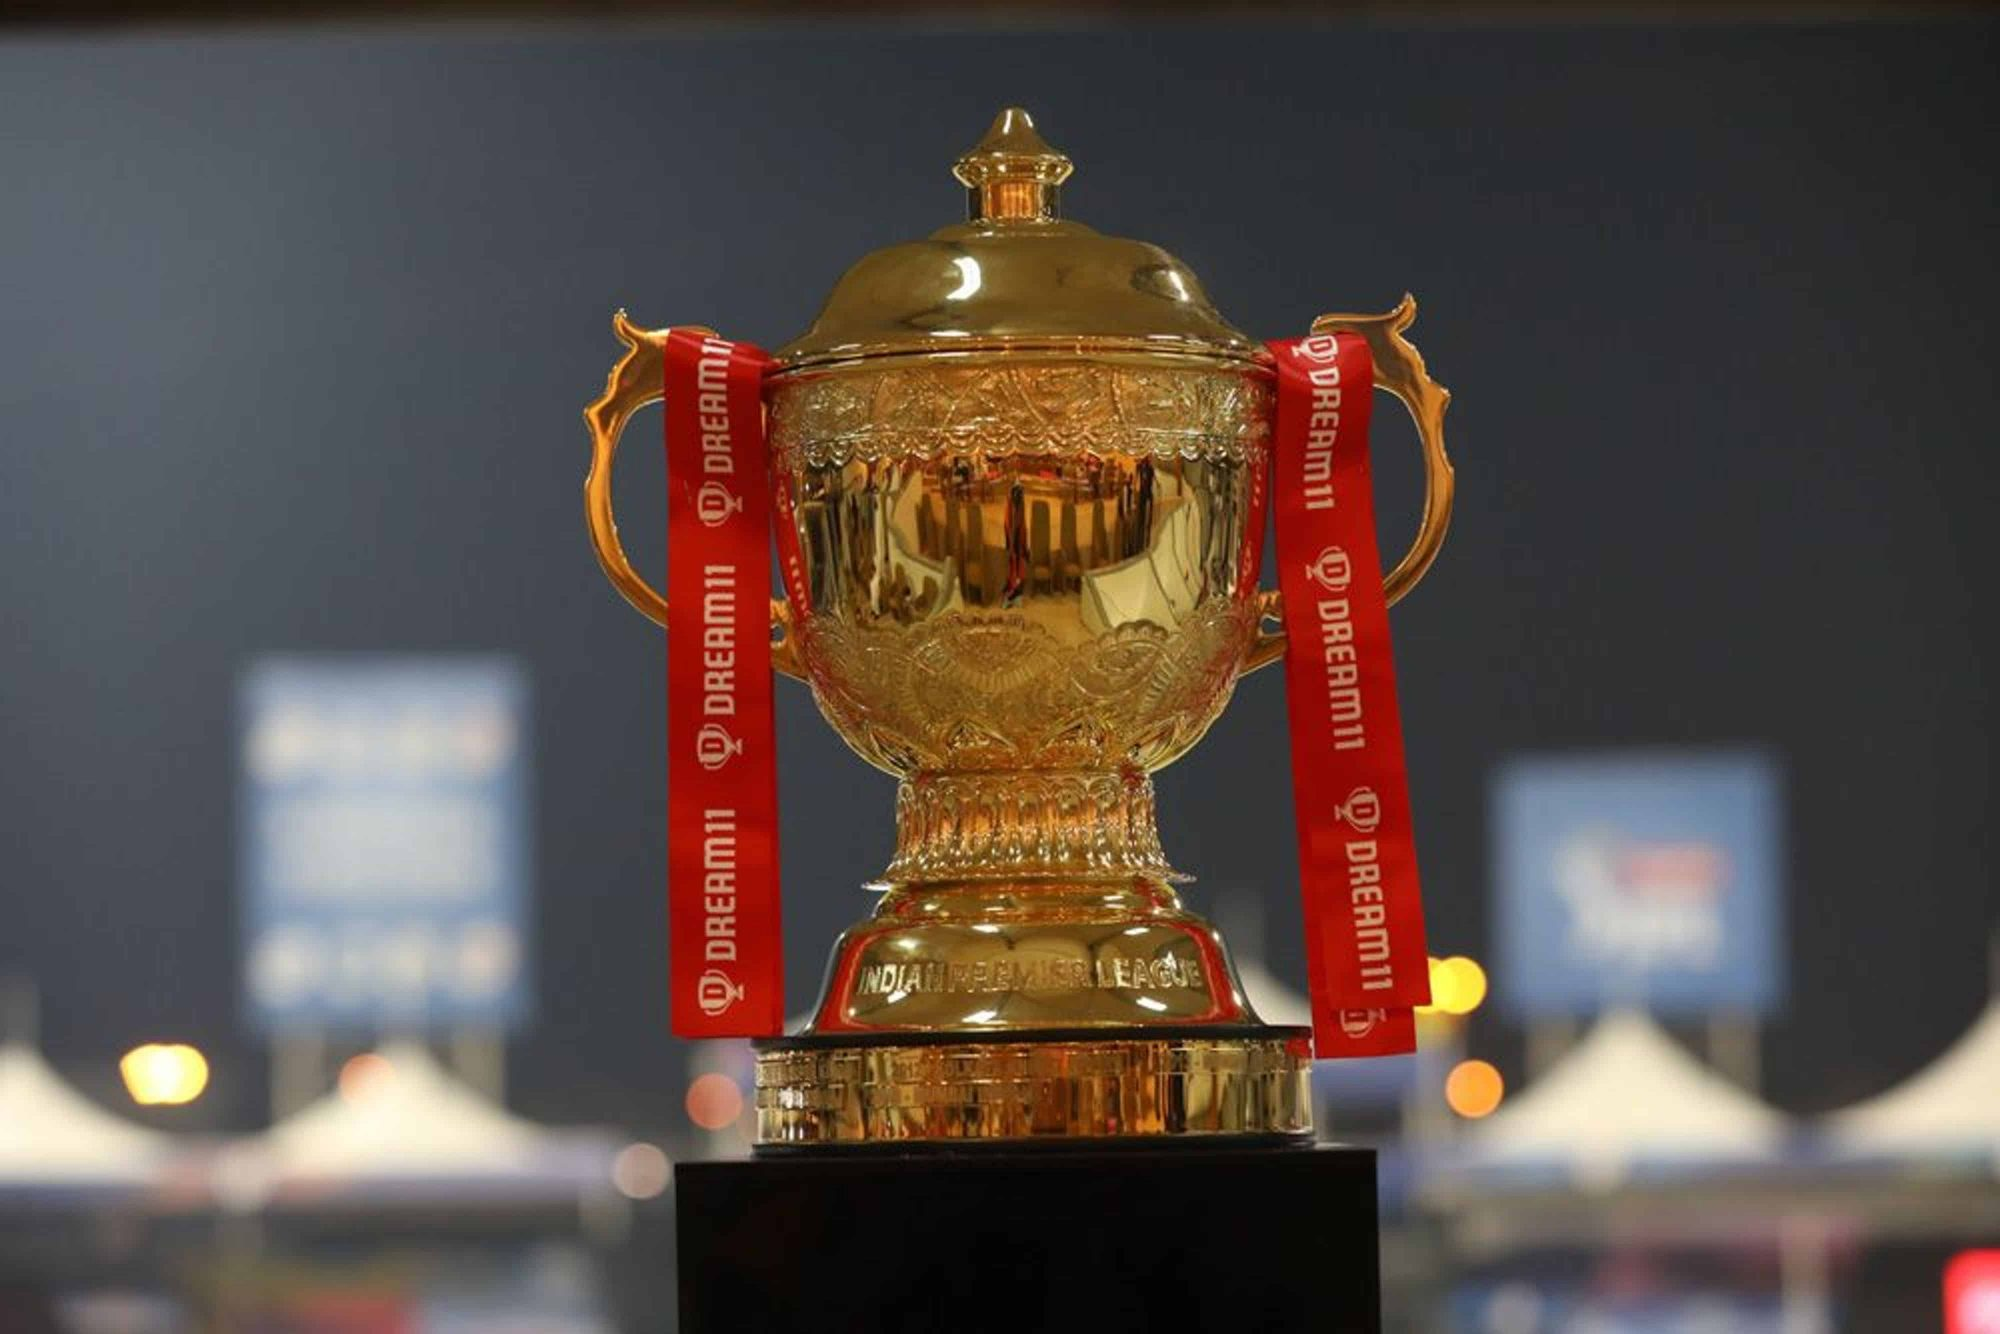 IPL 2021: List of Players Retained and Released By Teams For The 14th Edition of Indian Premier League